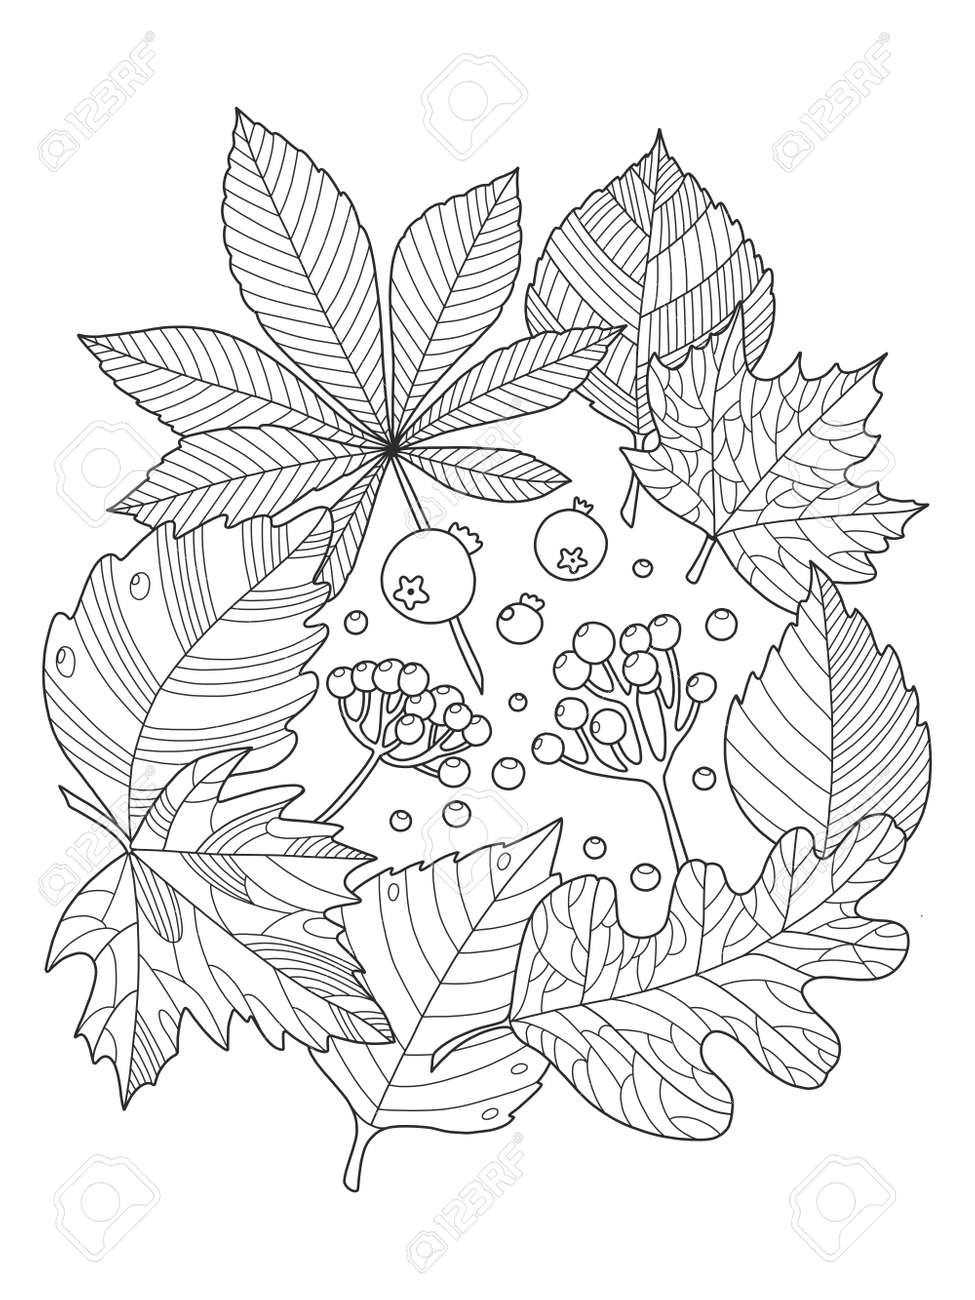 Tree Leaves Foliage Coloring Book Vector Illustration. Anti-stress ...